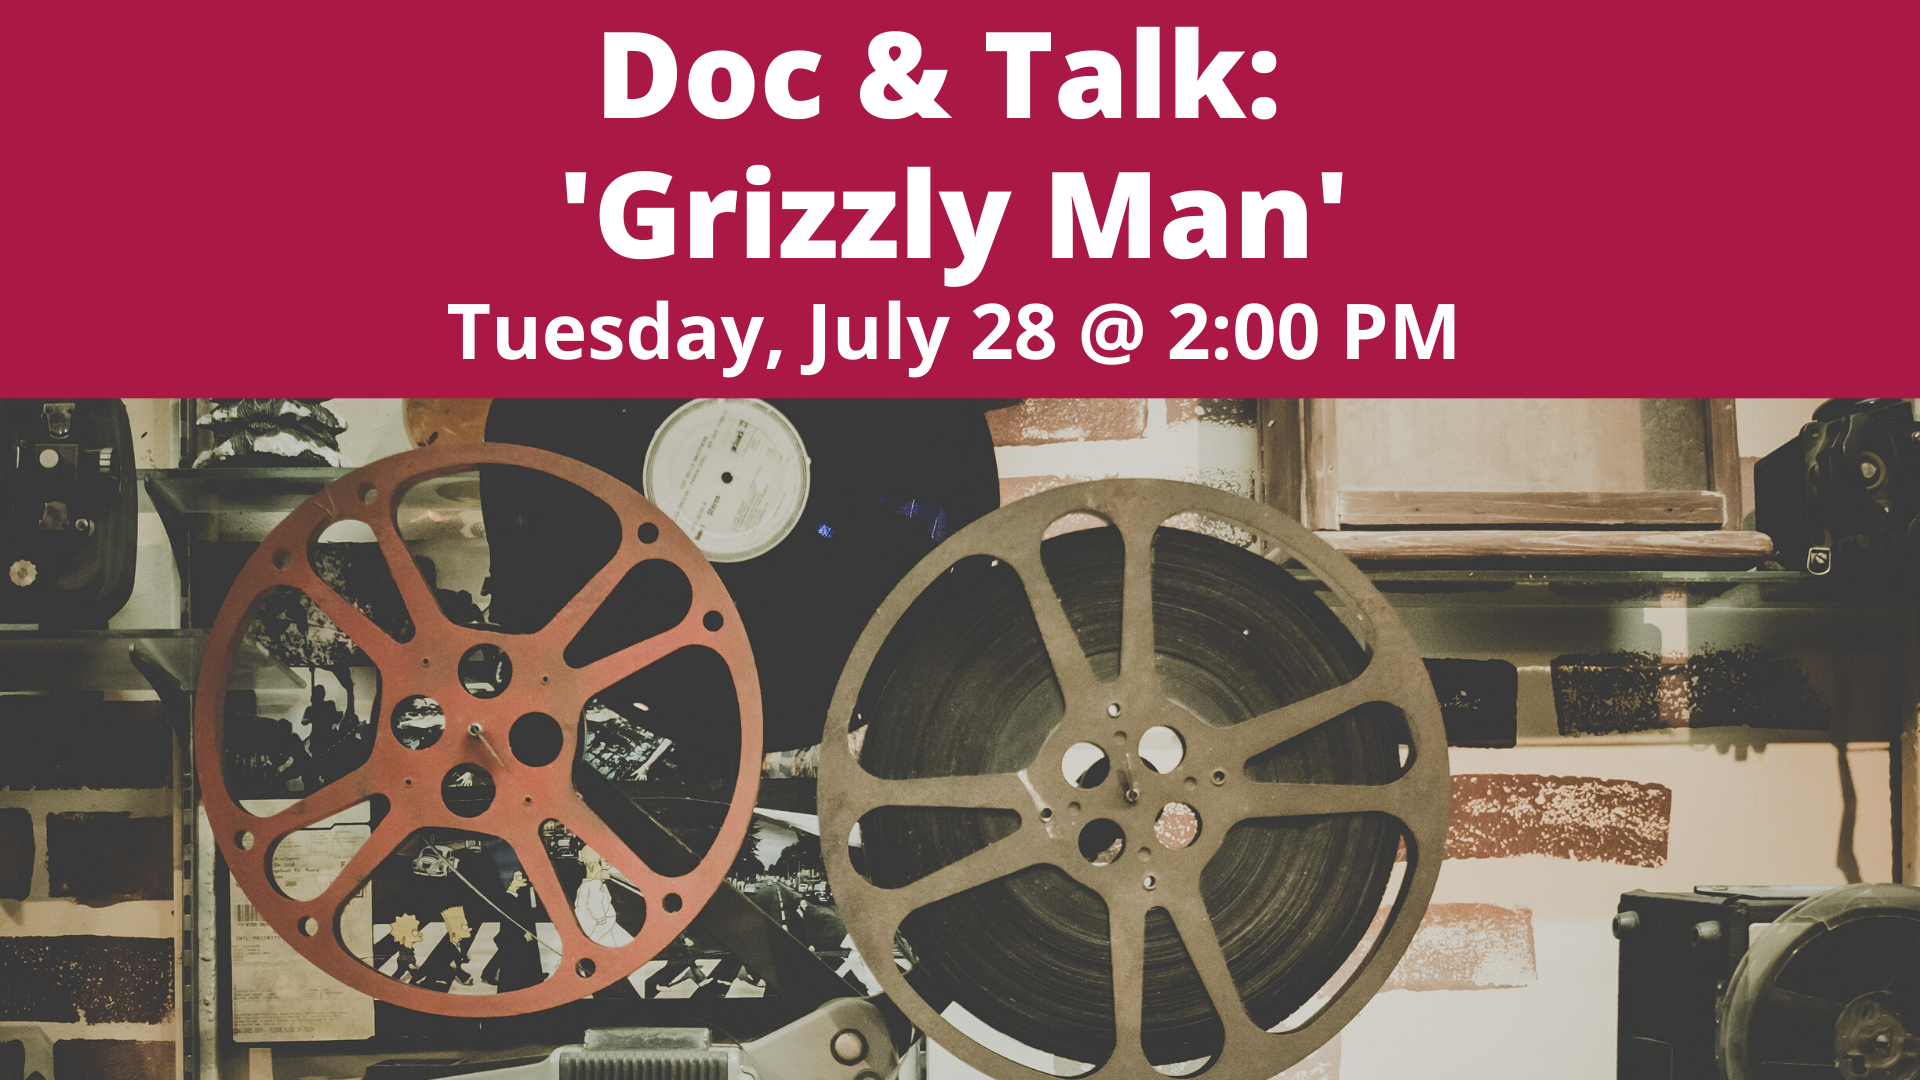 Doc & Talk: 'Grizzly Man'